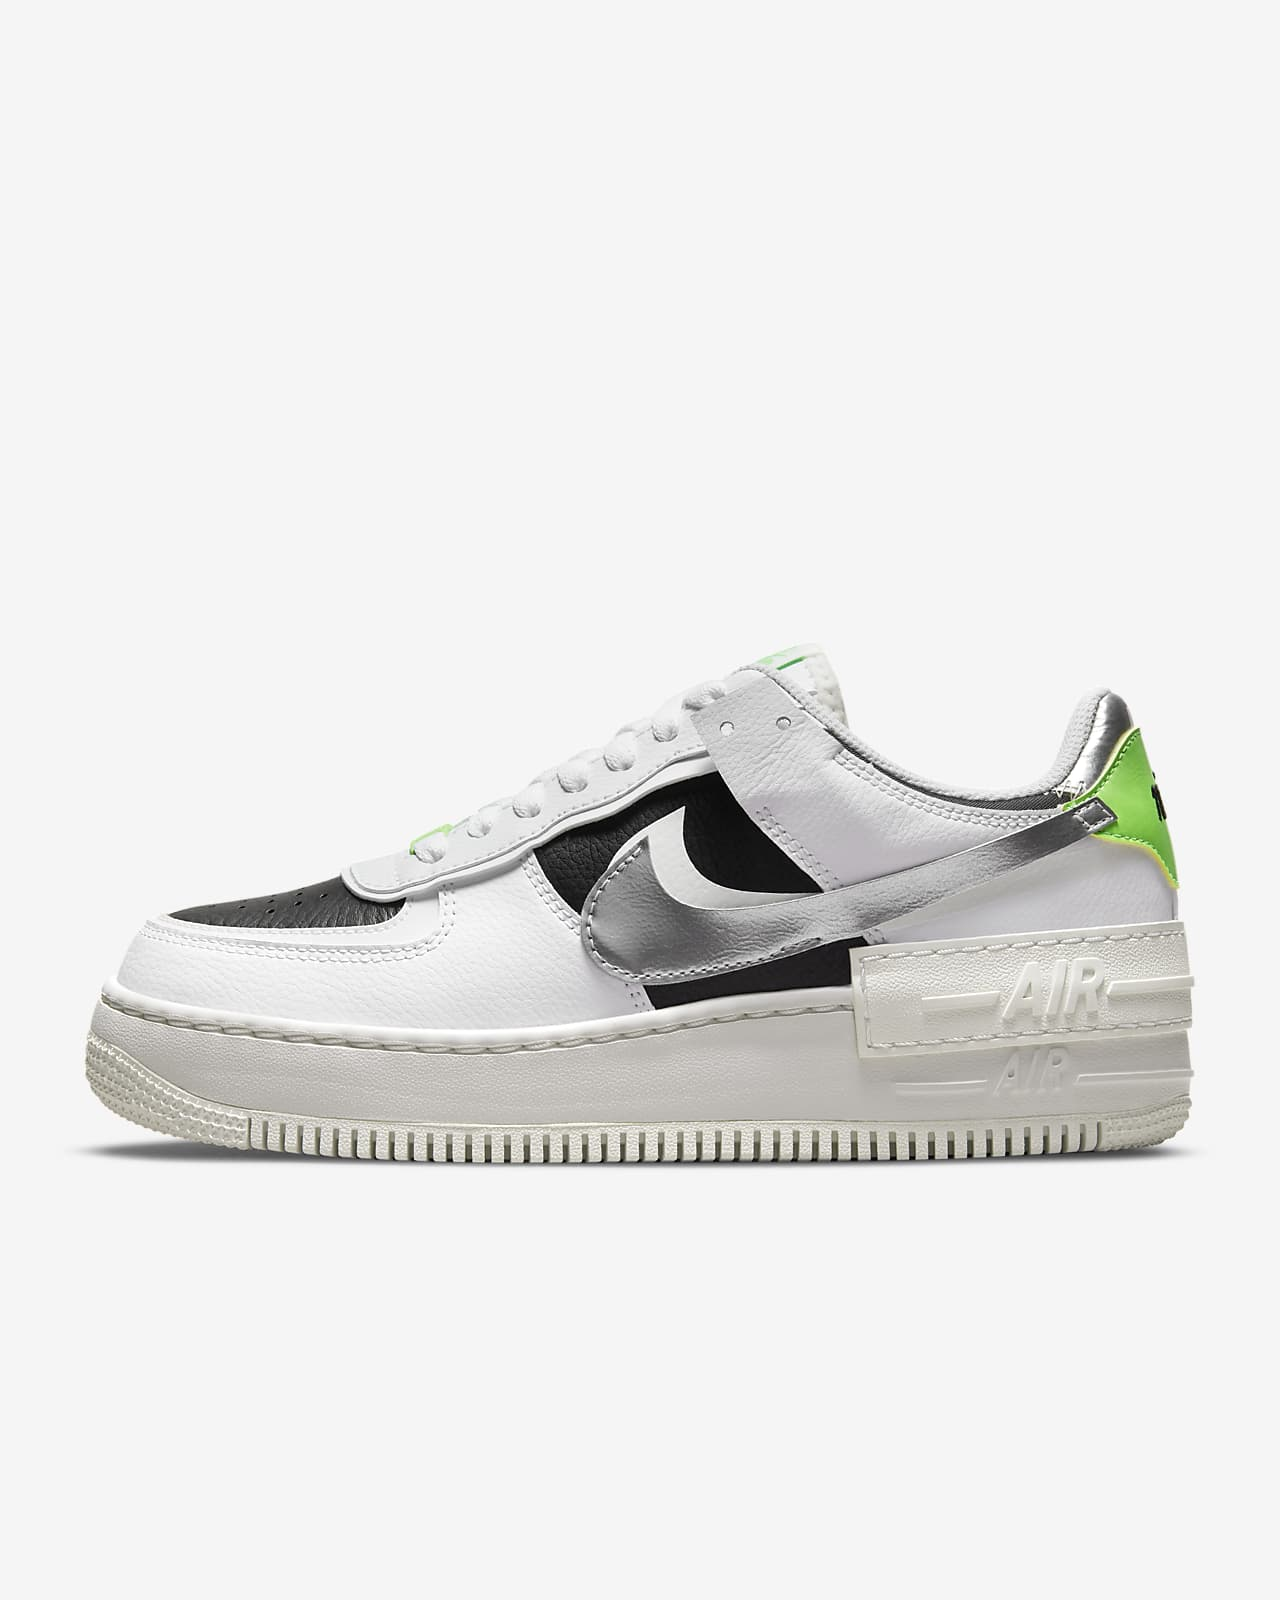 Chaussure Nike Air Force1 Shadow pour Femme